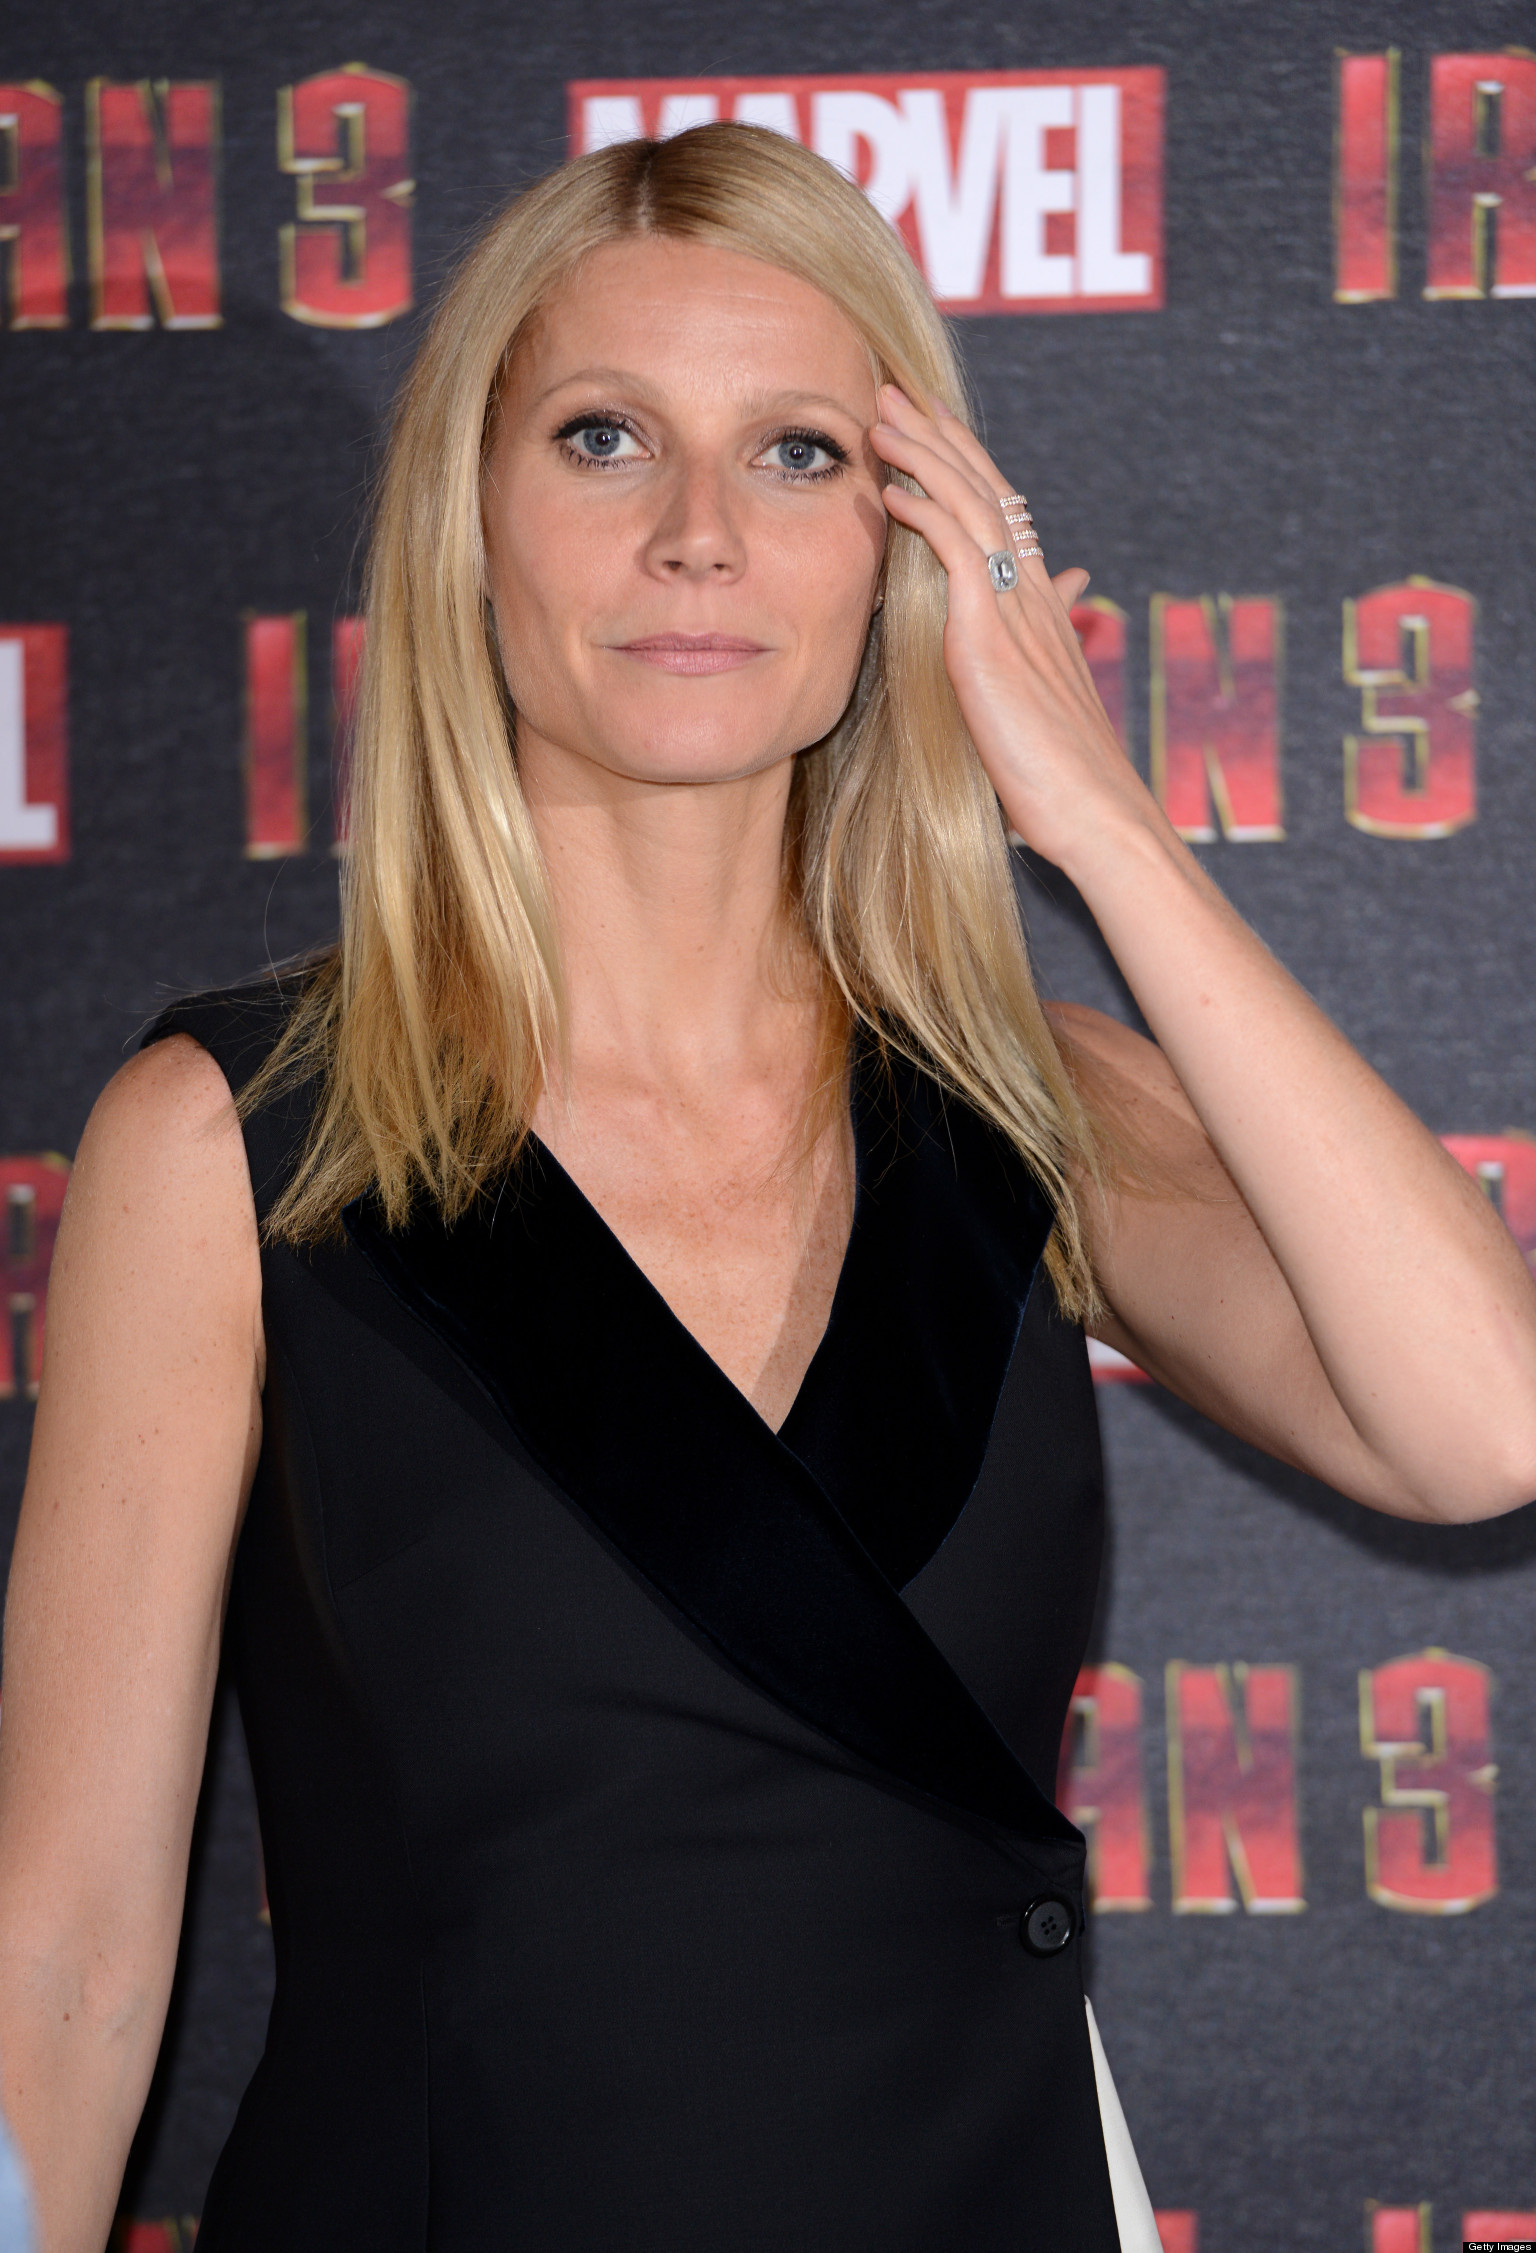 Gwyneth Paltrow Reacts to 'Most Hated Celebrity' Title